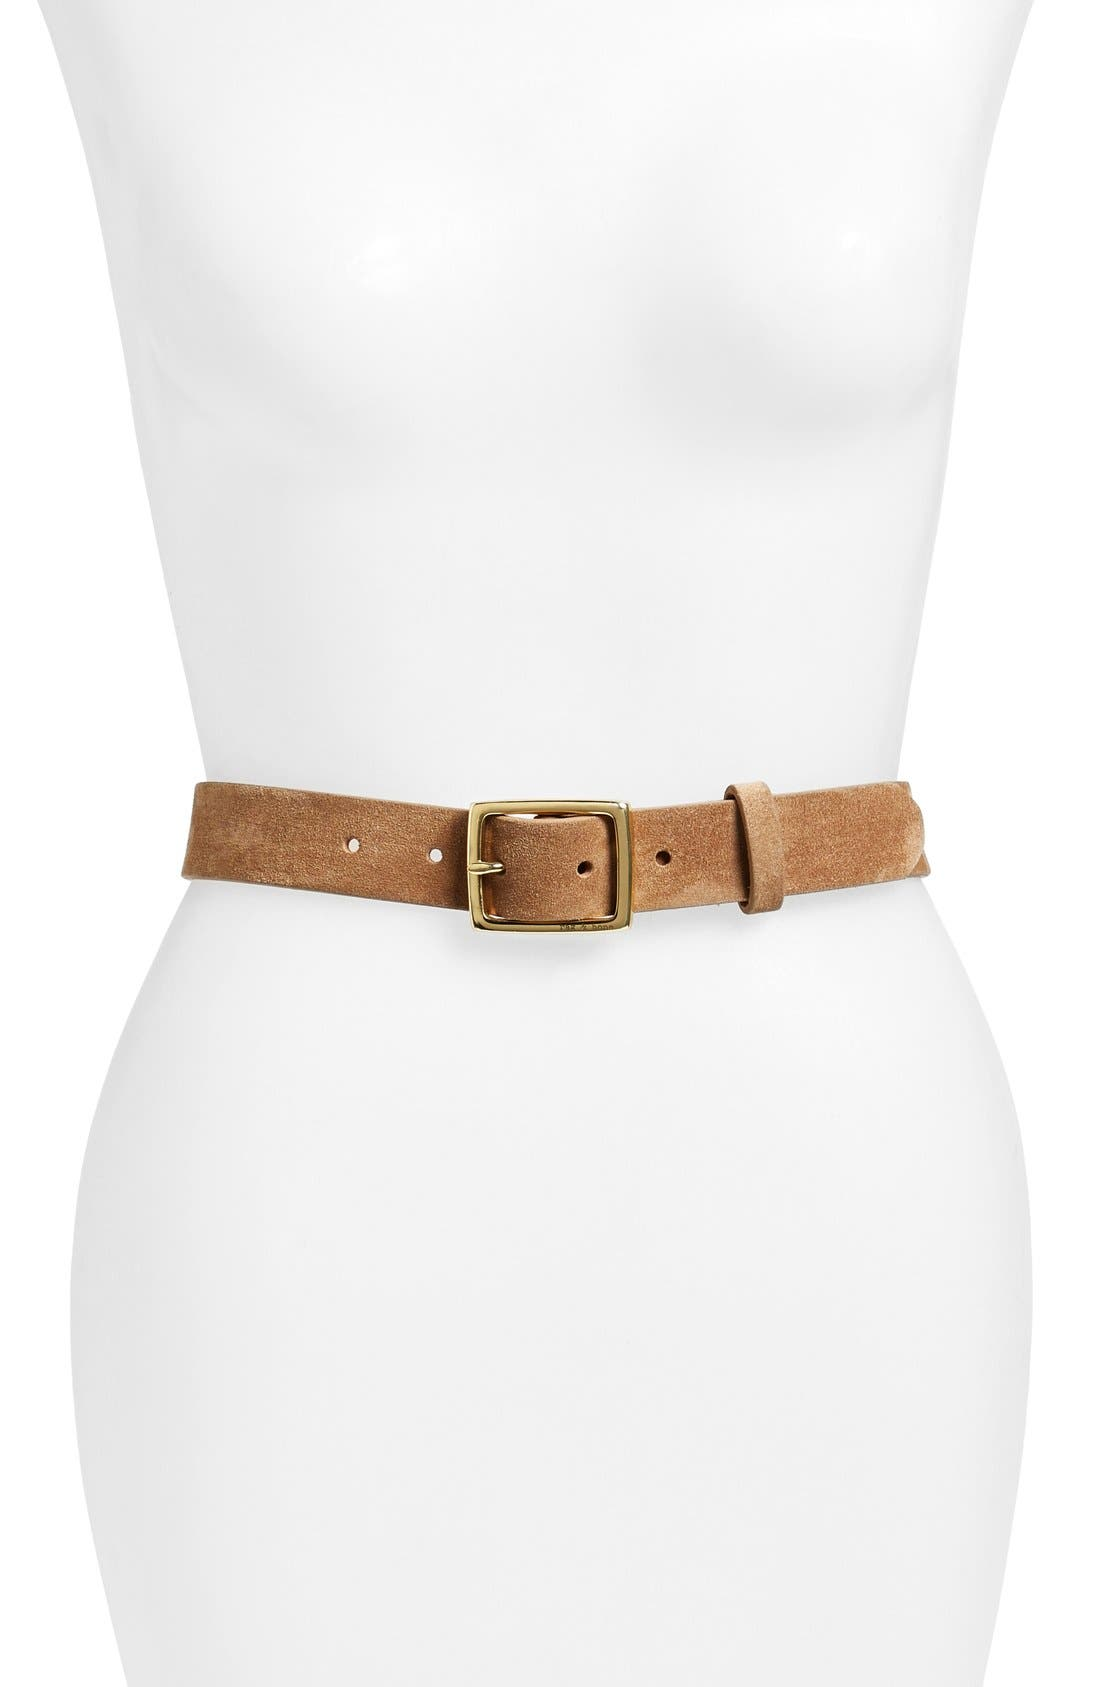 'Boyfriend' Leather Belt,                         Main,                         color, CAMEL